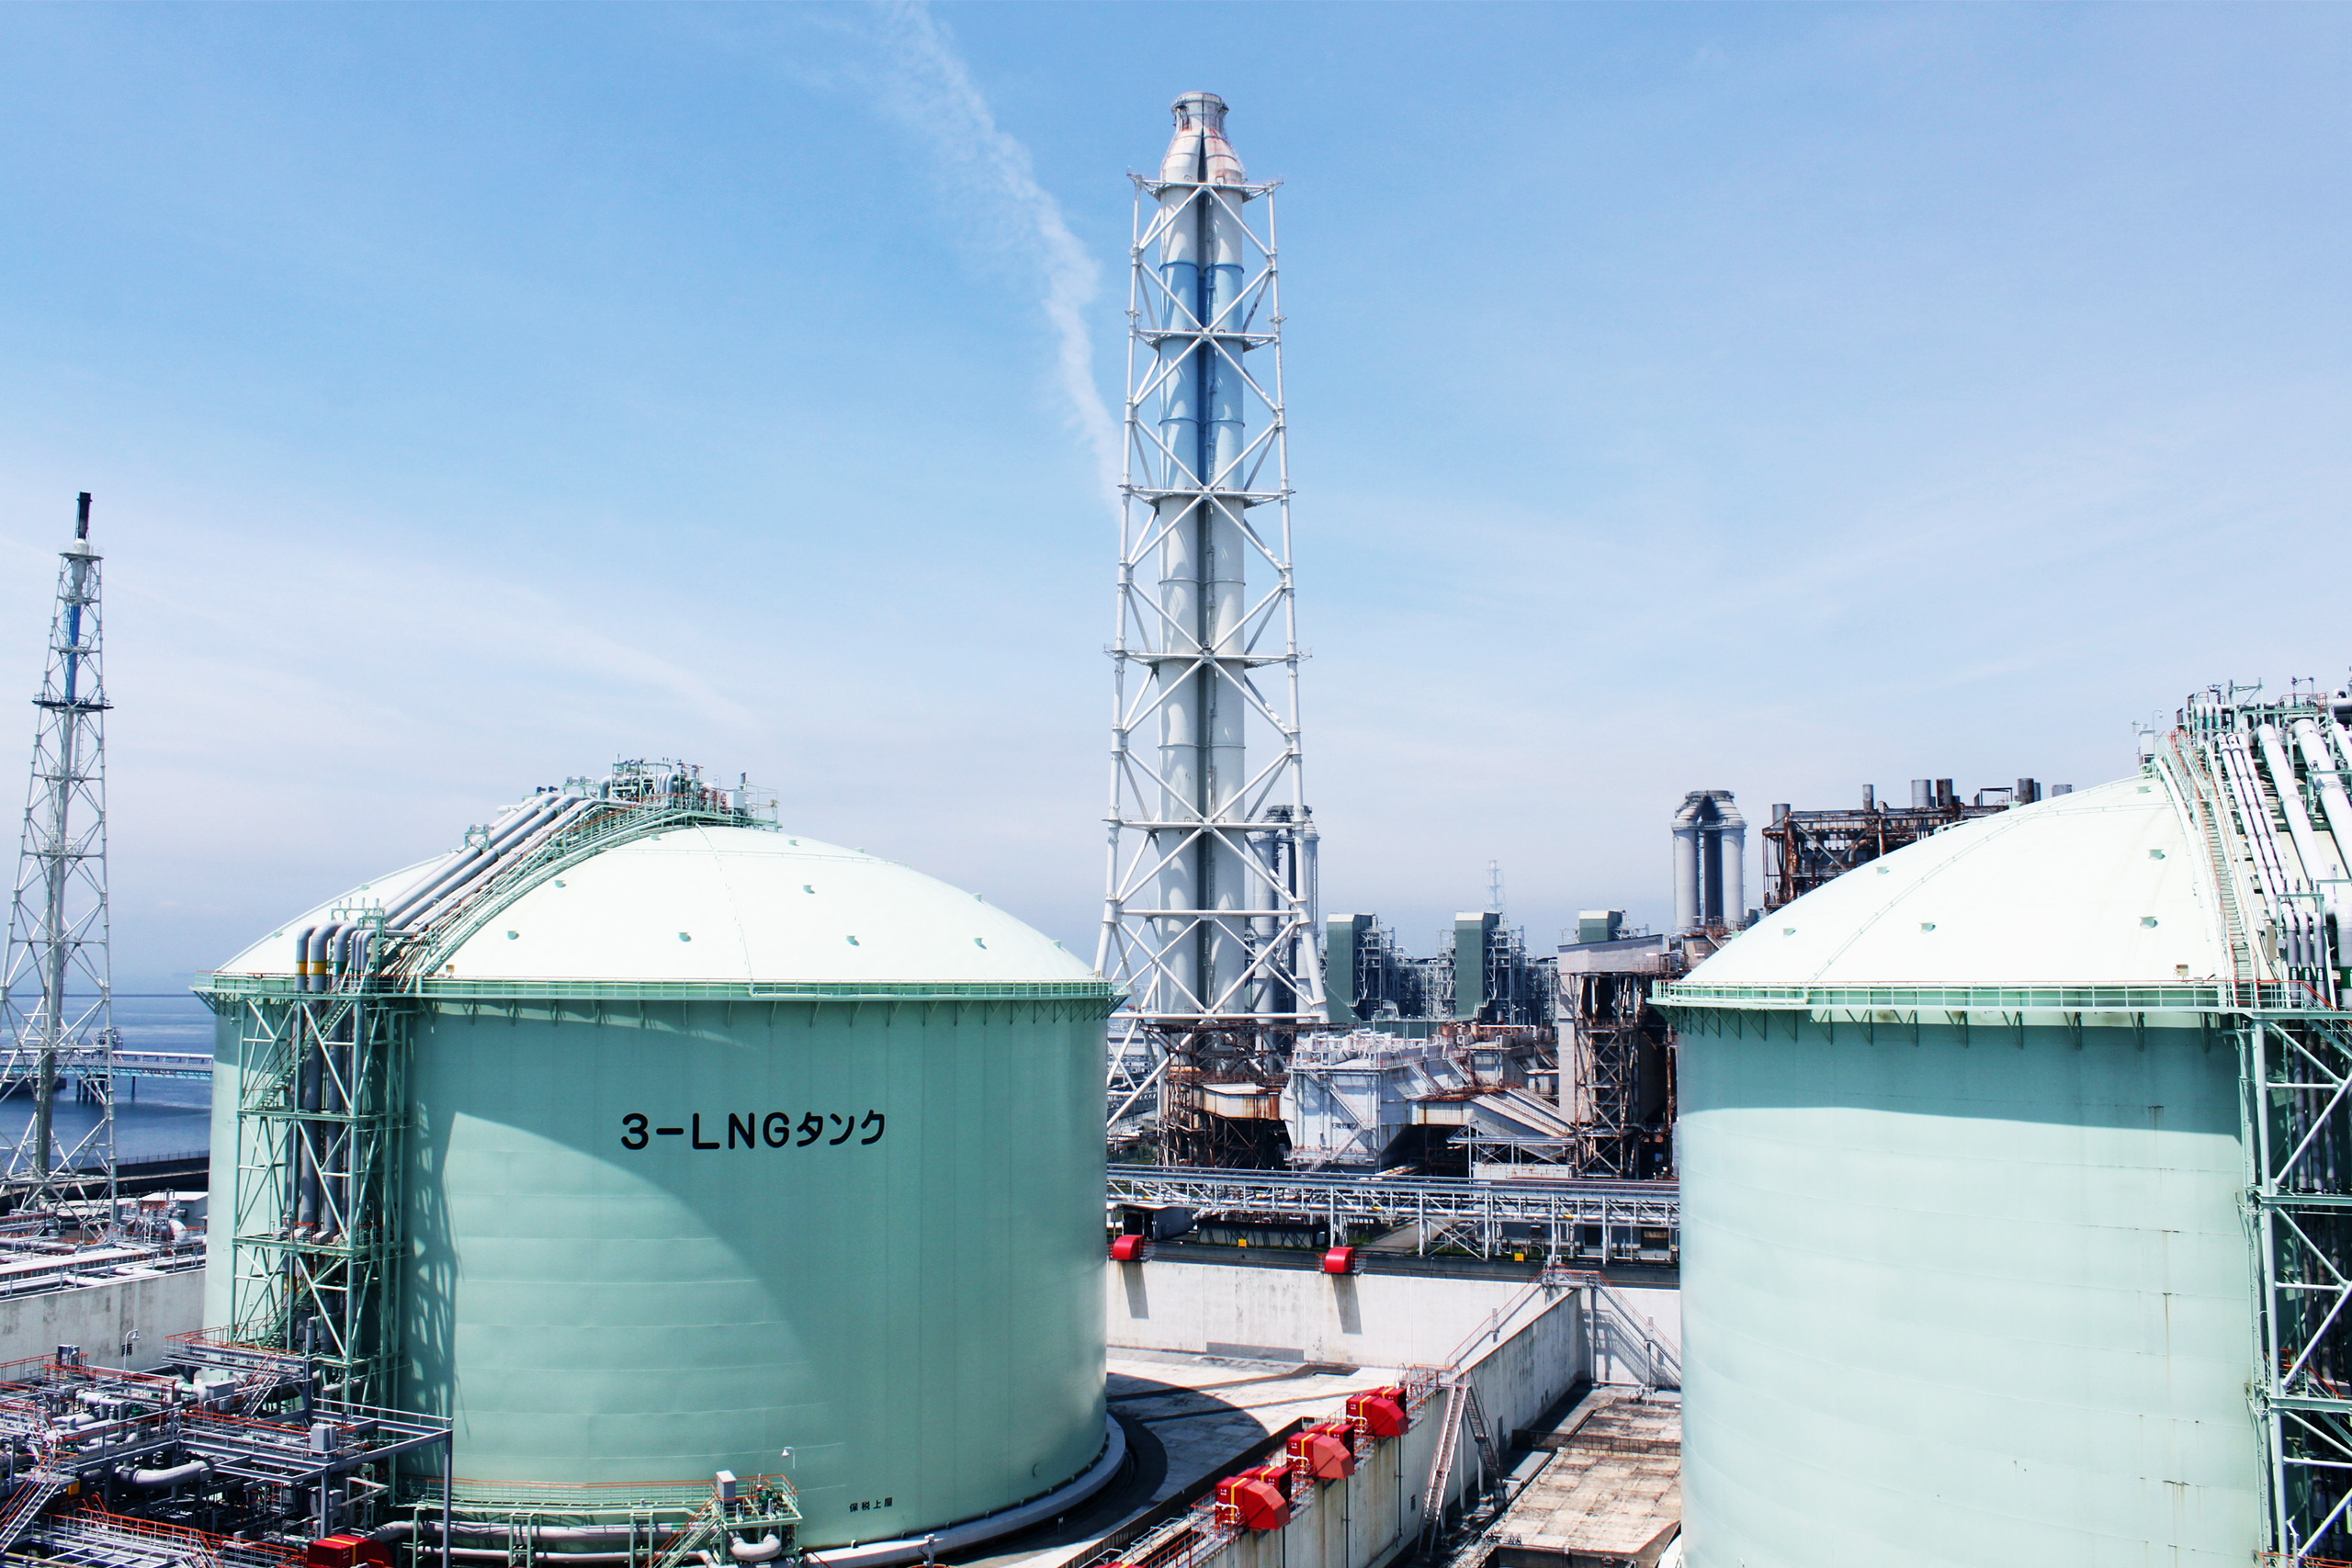 works_kepco-lng_detail_01